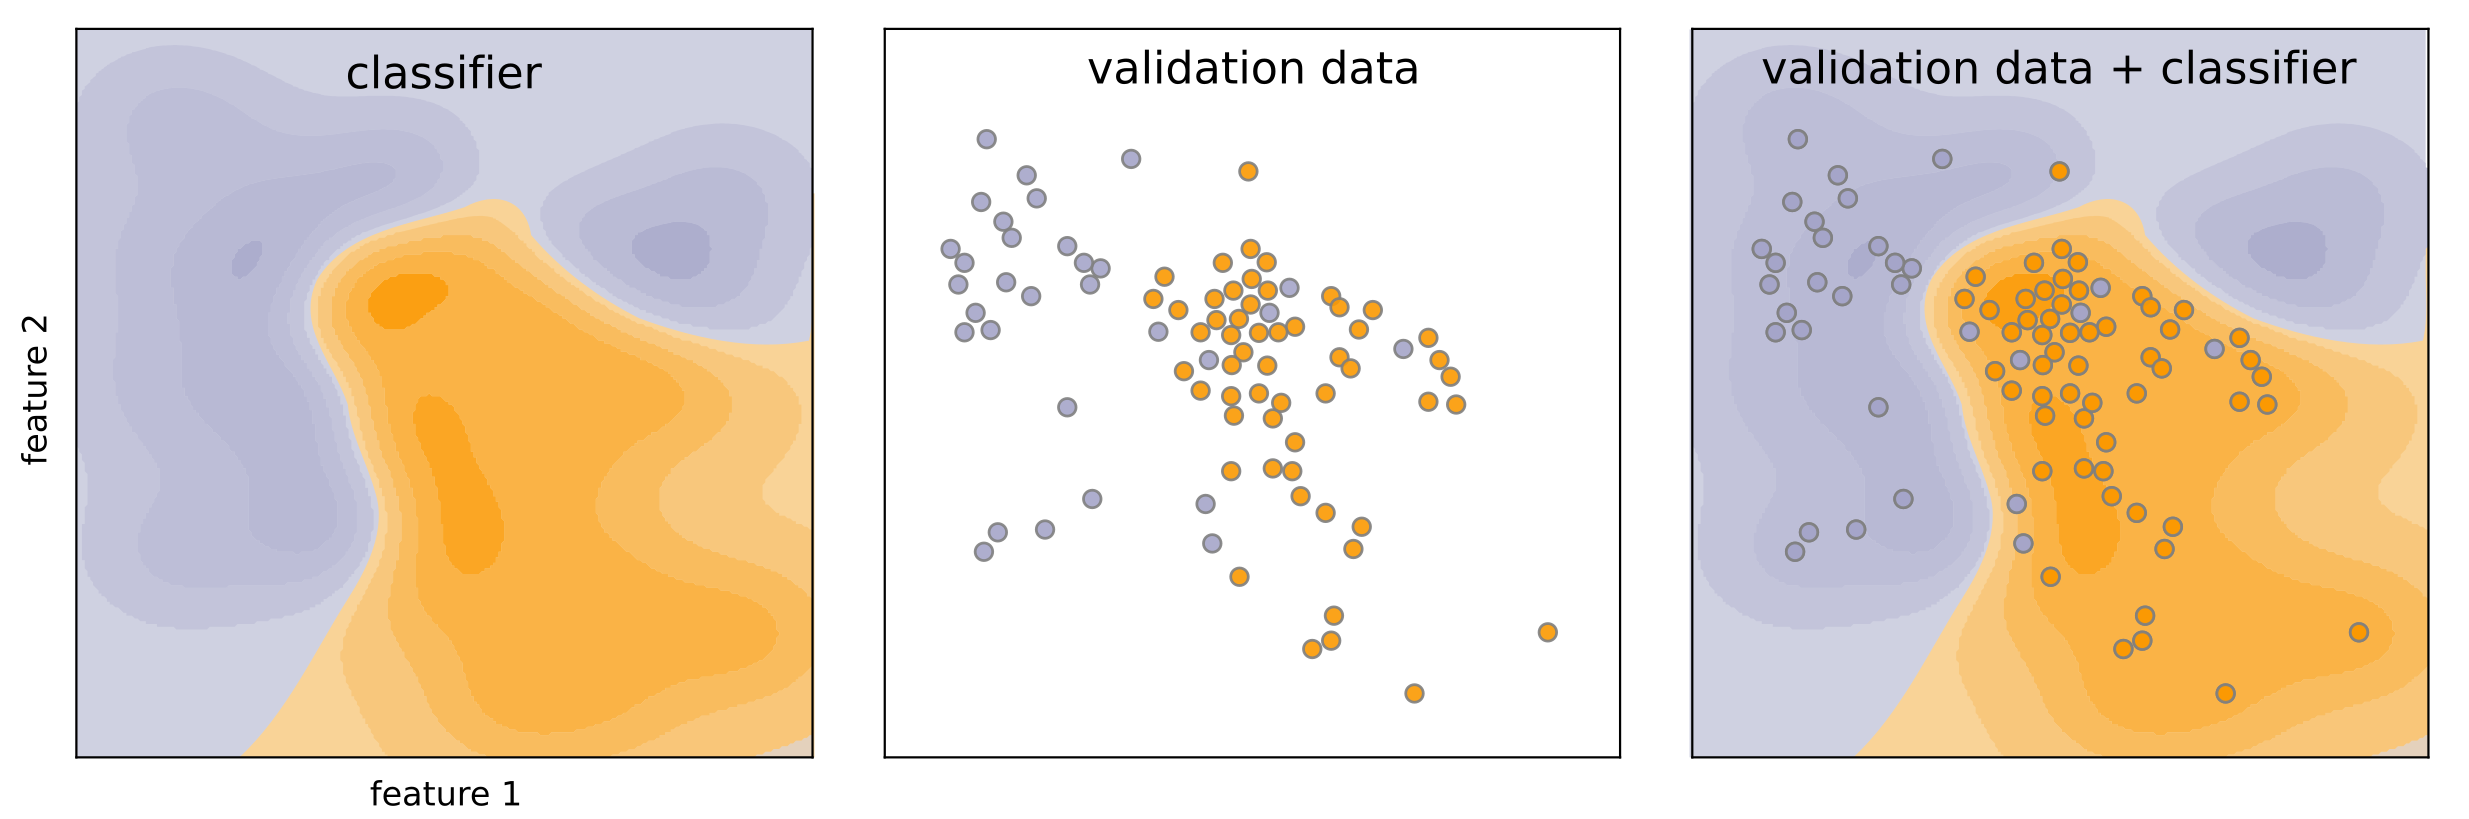 Our Two-class Classifier (left) has not seen the Validation Data (middle). We can calculate a classification report by Analyzing the intersection of the two (right).